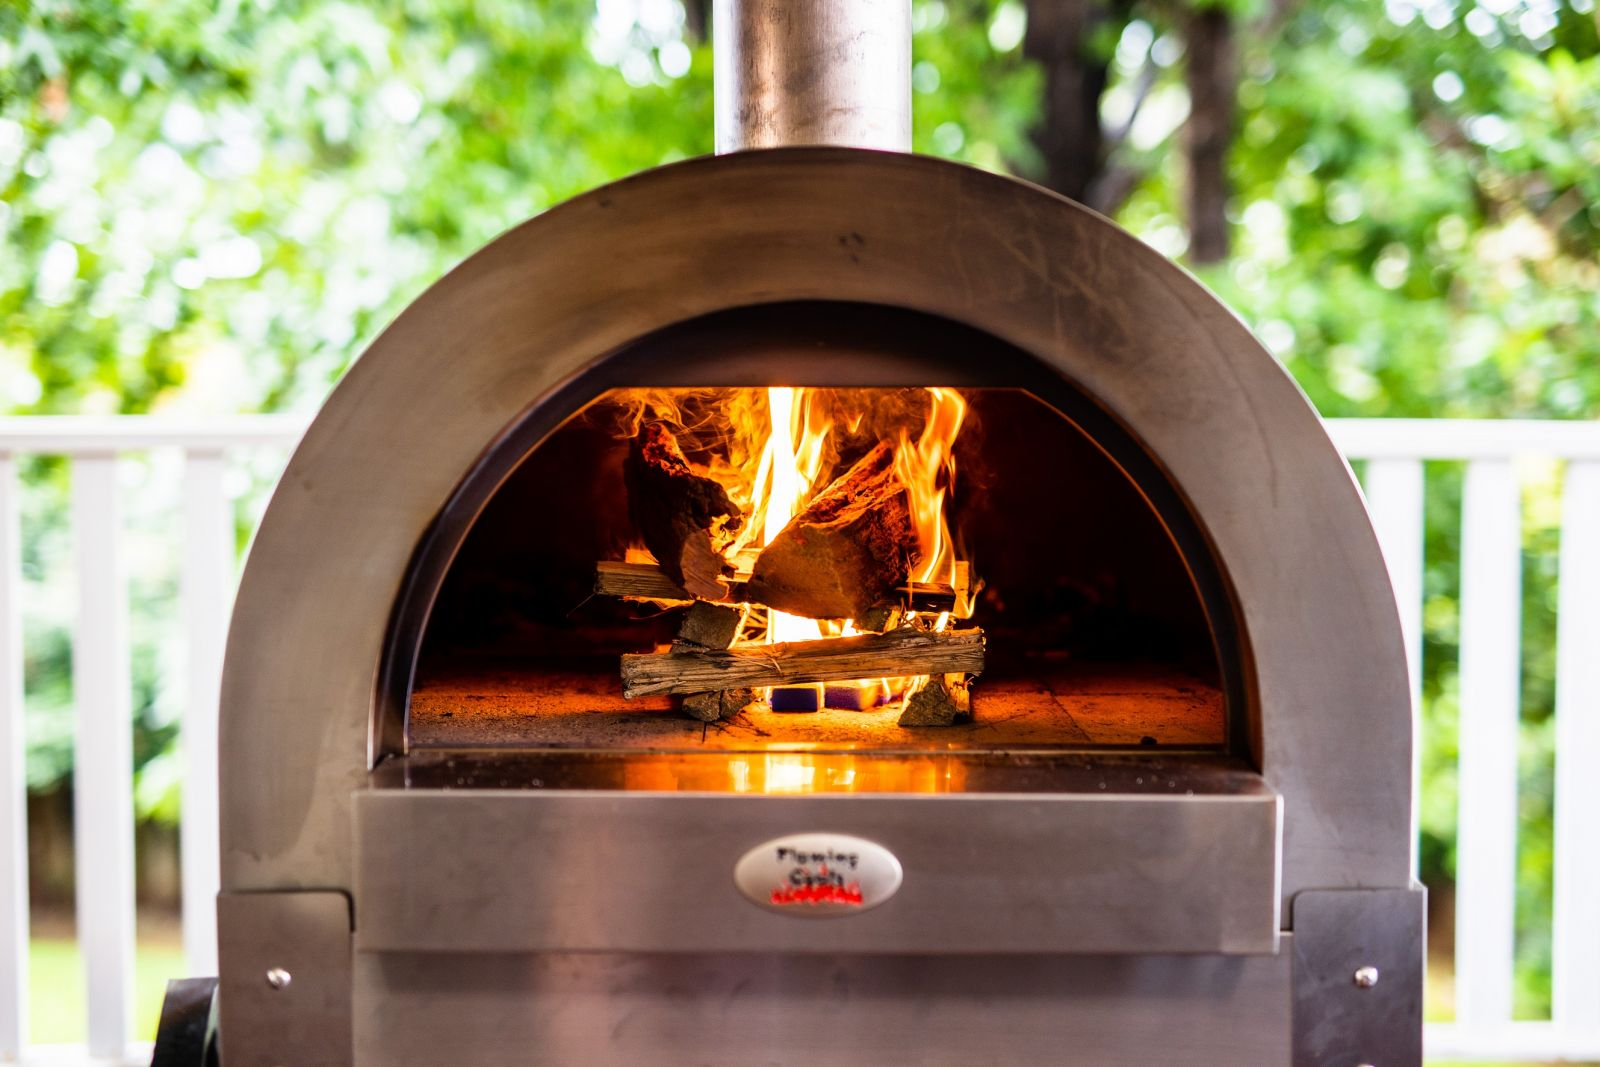 The image shows a running Large Stainless Steel Wood Fired Pizza Oven